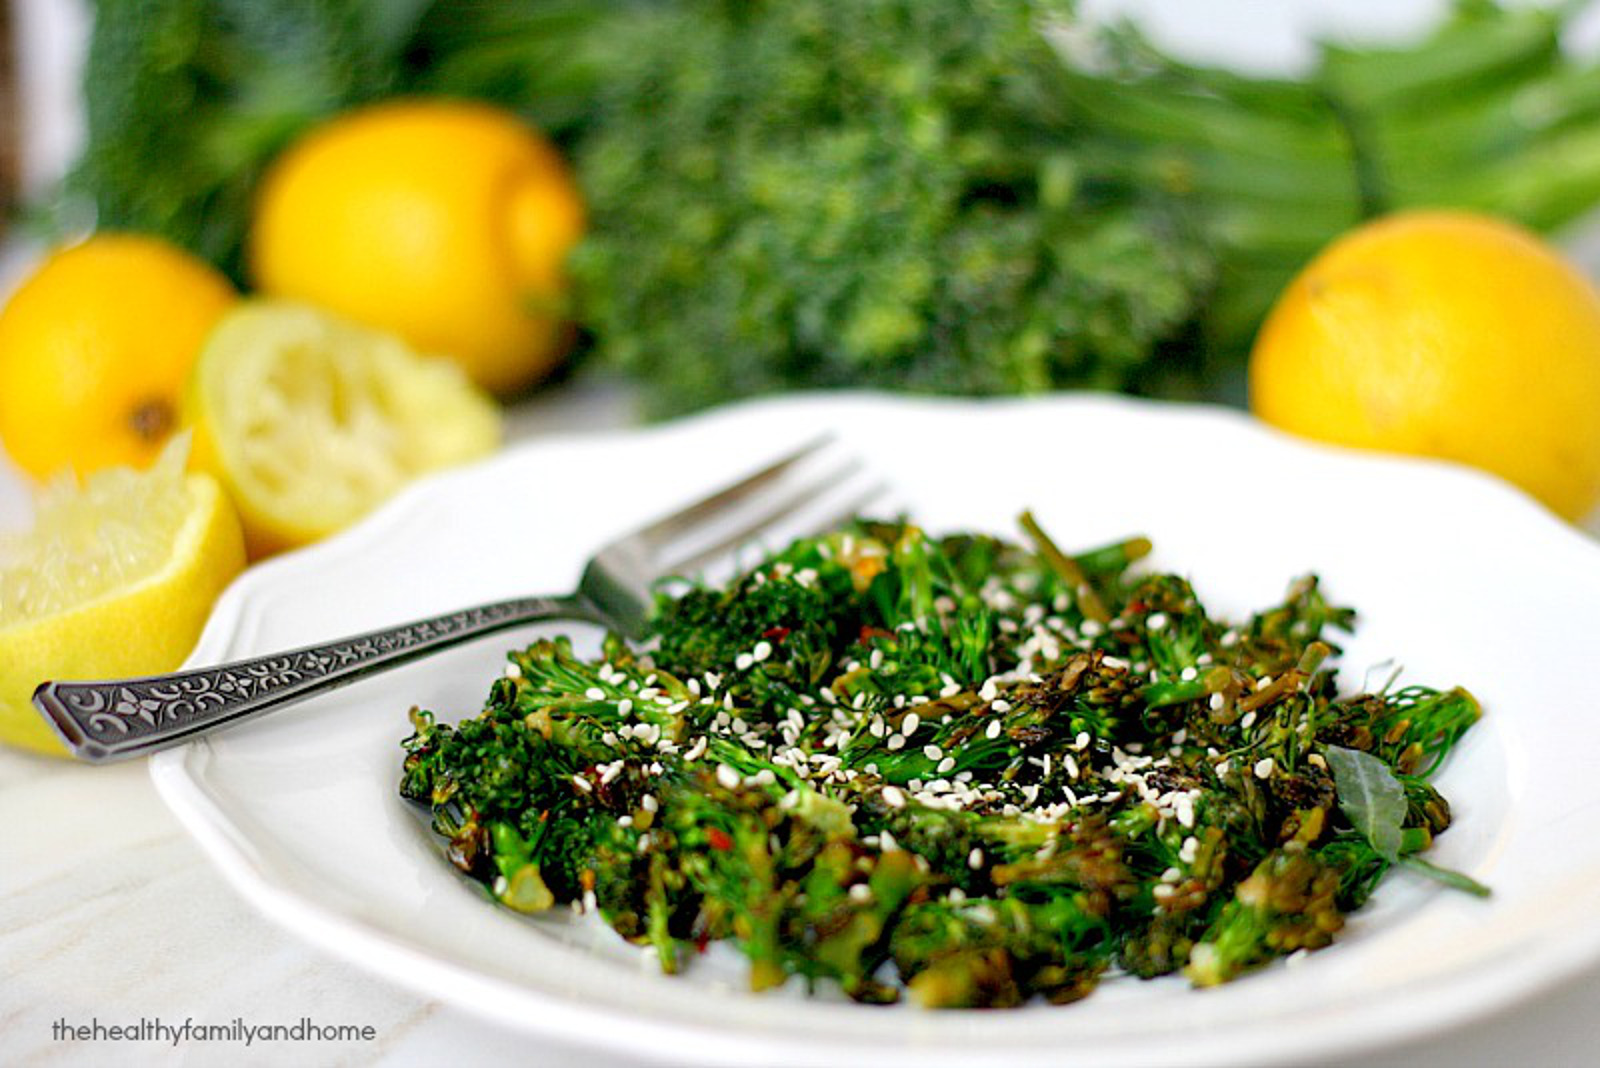 The Best Kinds of Ways to Use Different Types of Broccoli